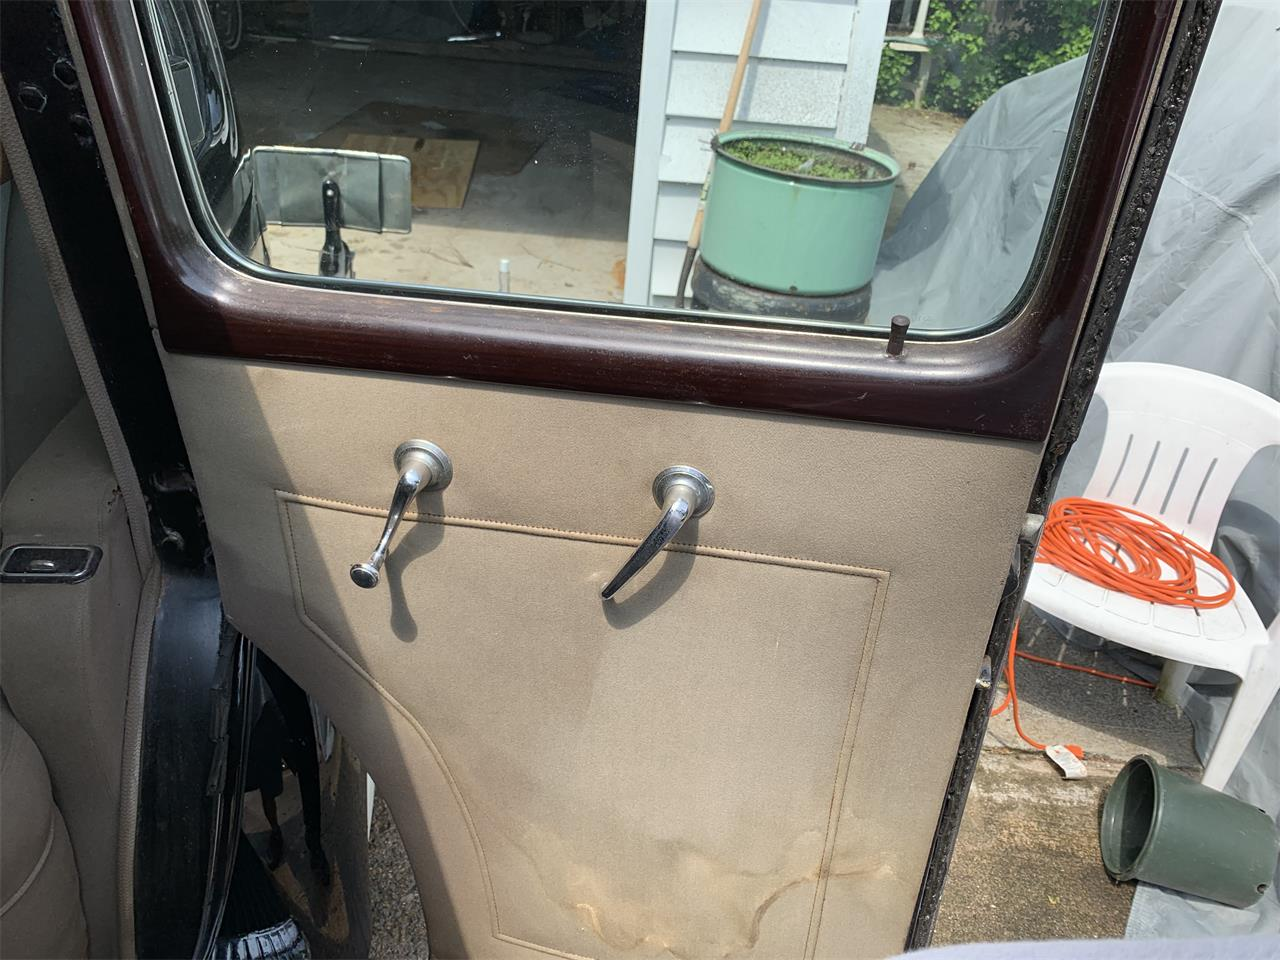 Large Picture of '38 Cadillac Series 60 located in Rhode Island Offered by a Private Seller - PZ9J